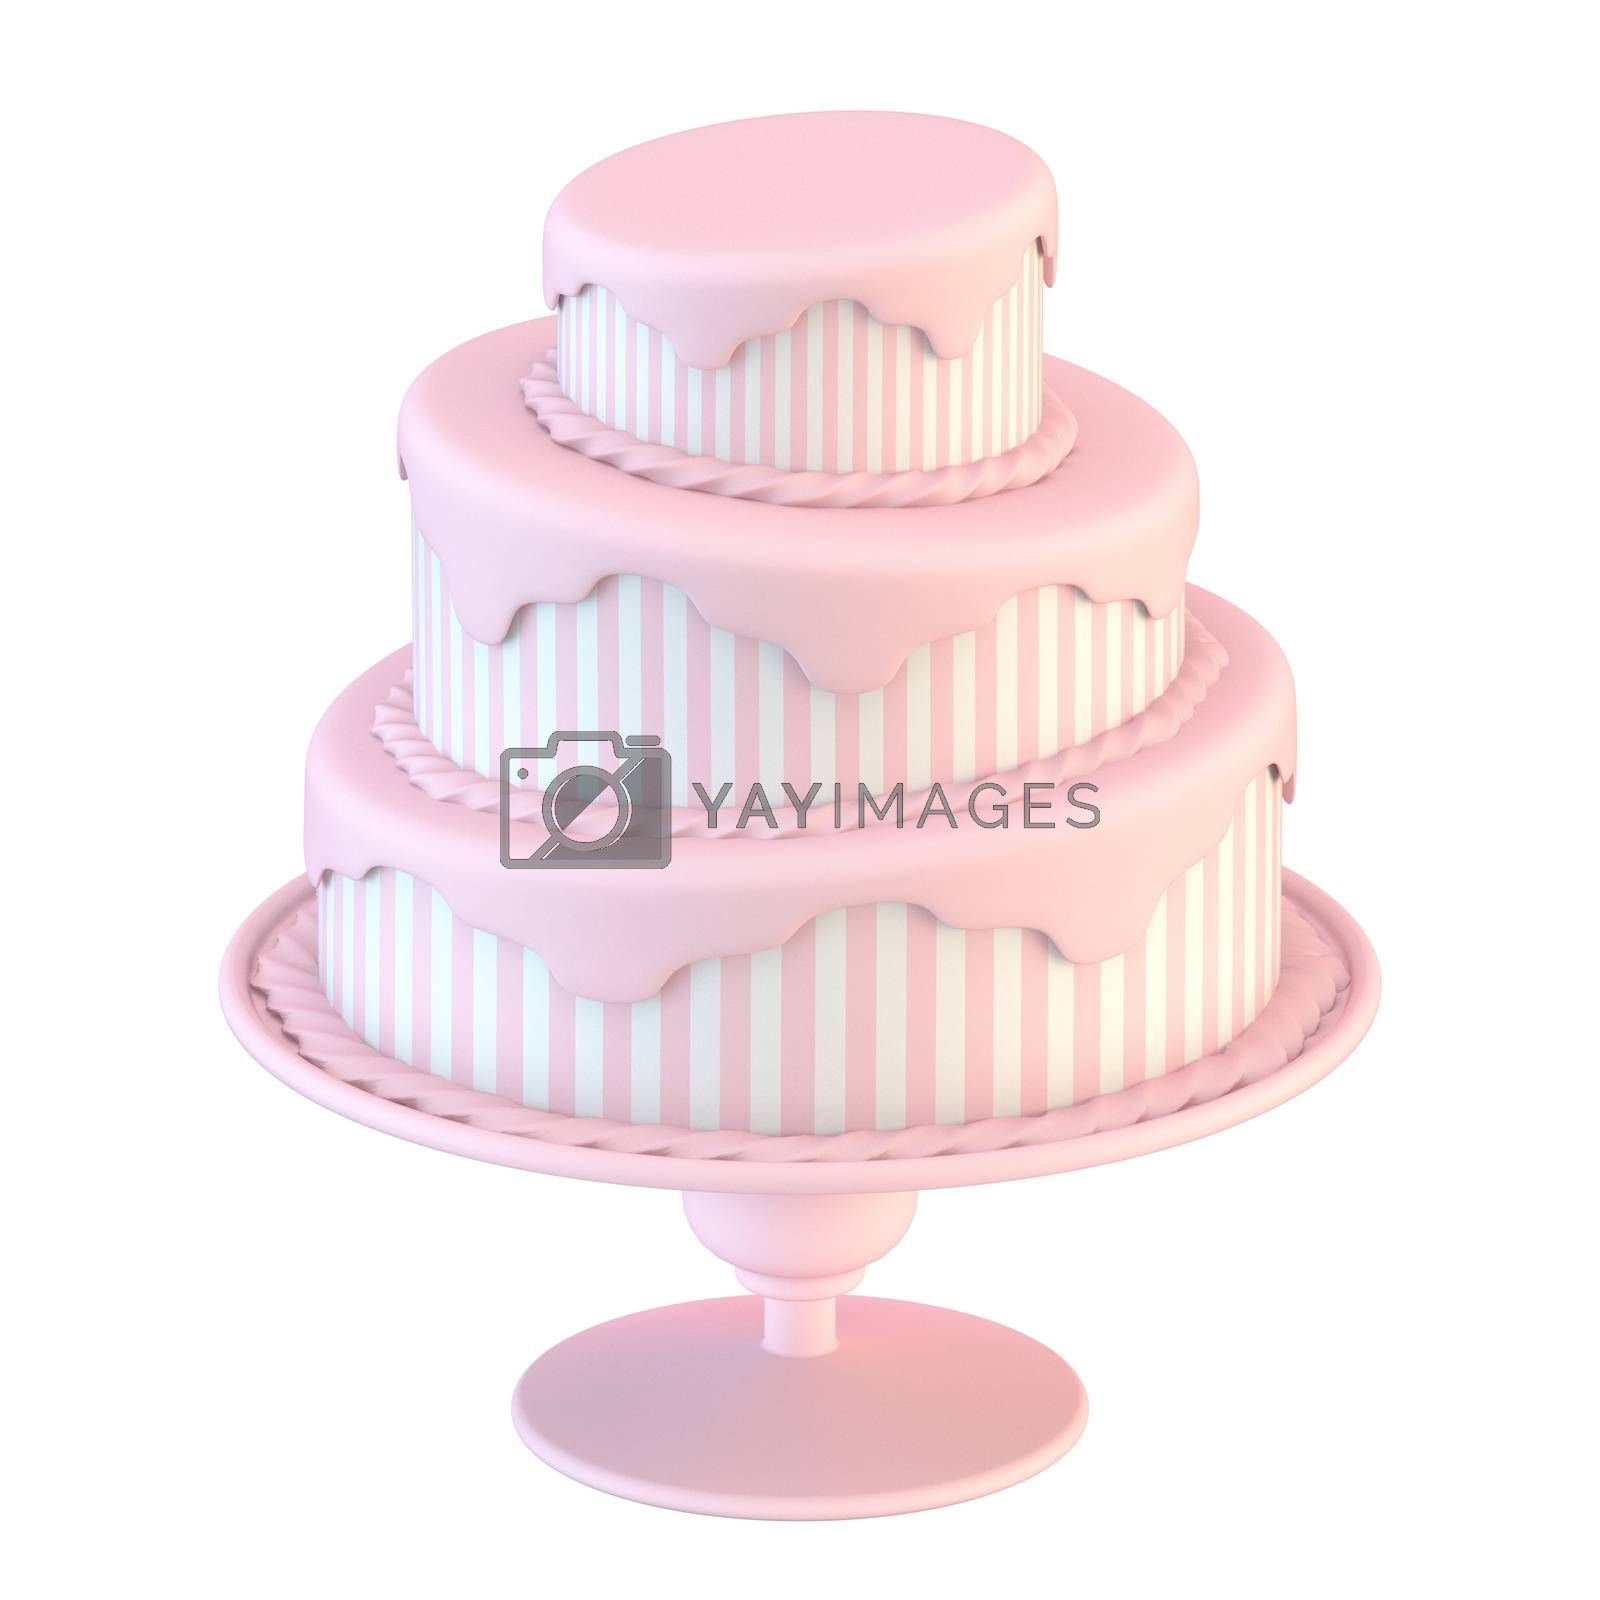 Pink white cake with stripes 3D render illustration isolated on white background